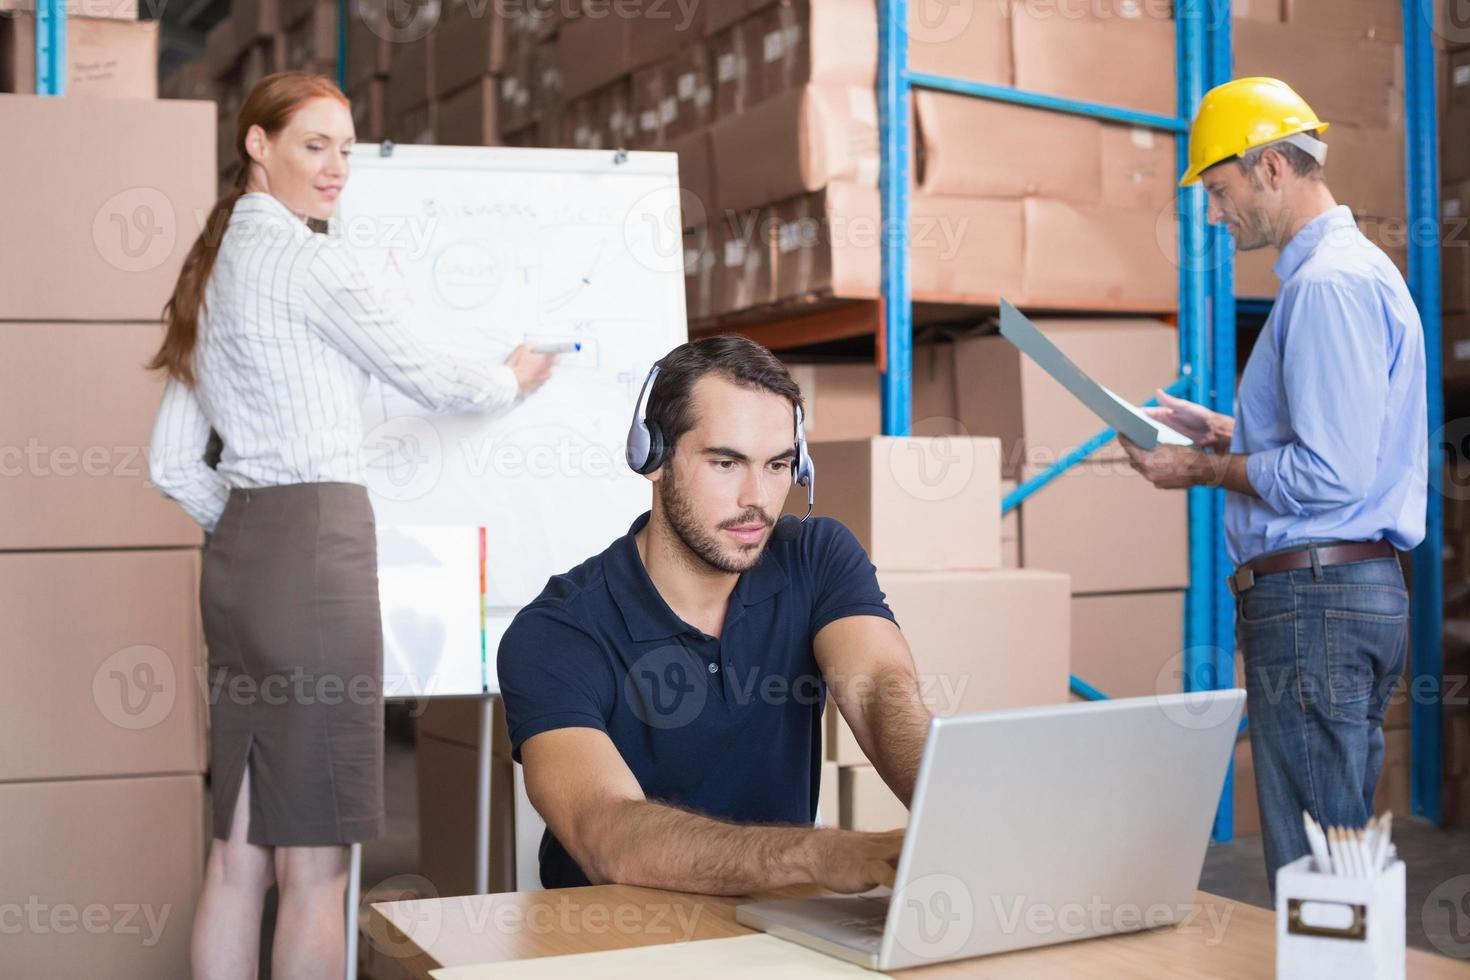 Warehouse team working together on shipment photo